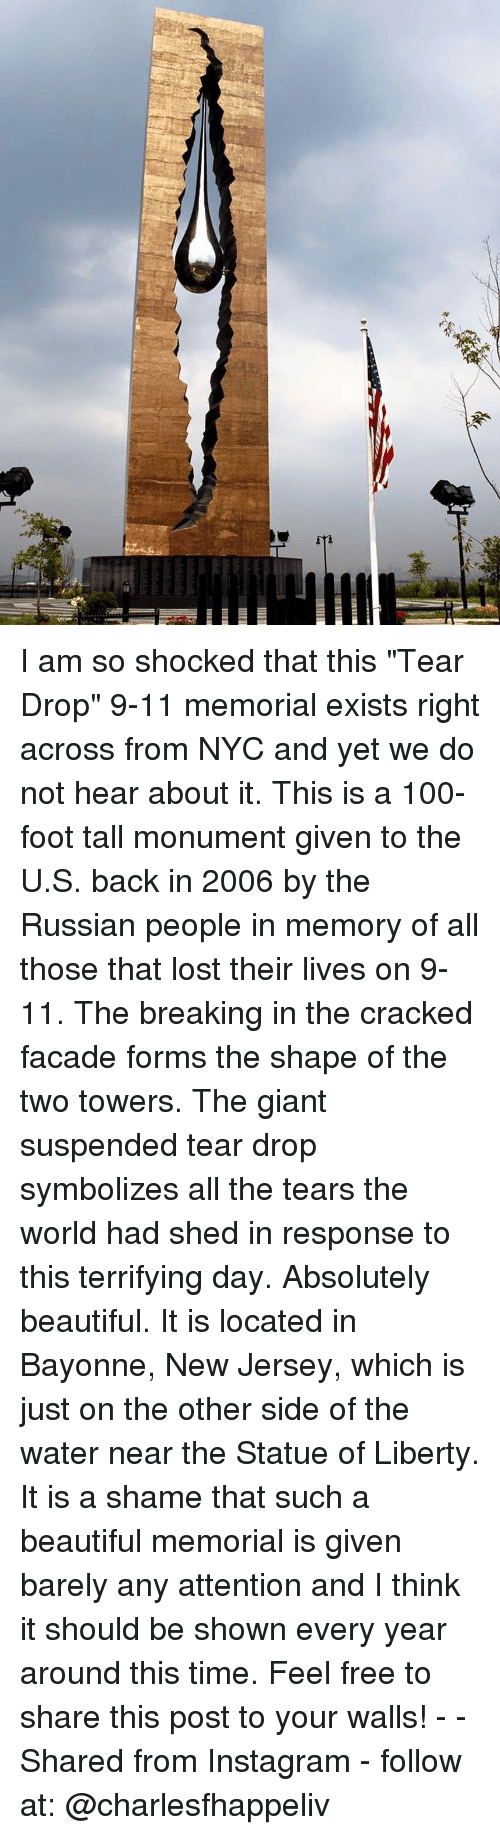 """9/11, Anaconda, and Beautiful: I am so shocked that this """"Tear Drop"""" 9-11 memorial exists right across from NYC and yet we do not hear about it. This is a 100-foot tall monument given to the U.S. back in 2006 by the Russian people in memory of all those that lost their lives on 9-11. The breaking in the cracked facade forms the shape of the two towers. The giant suspended tear drop symbolizes all the tears the world had shed in response to this terrifying day. Absolutely beautiful. It is located in Bayonne, New Jersey, which is just on the other side of the water near the Statue of Liberty. It is a shame that such a beautiful memorial is given barely any attention and I think it should be shown every year around this time. Feel free to share this post to your walls! - - Shared from Instagram - follow at: @charlesfhappeliv"""